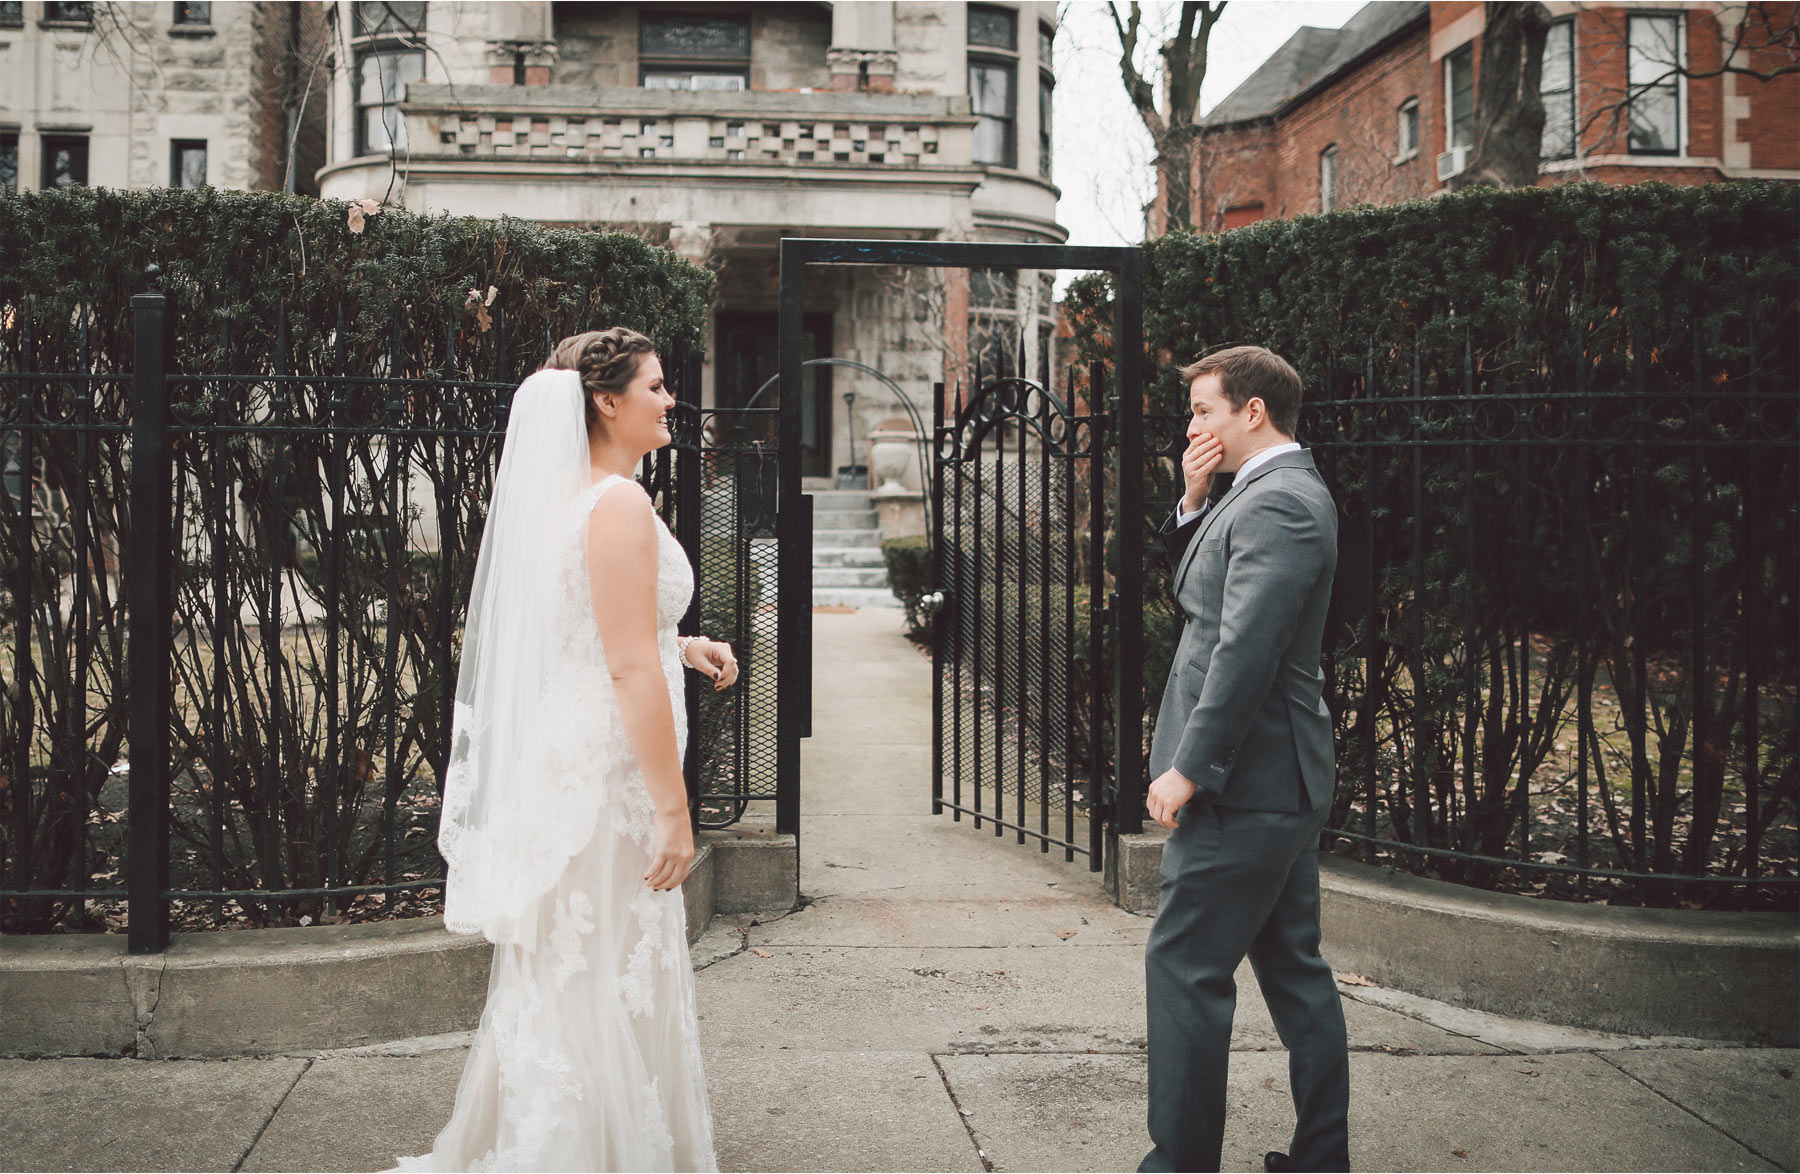 06-Chicago-Illinois-Wedding-Photographer-by-Andrew-Vick-Photography-Winter-Stan-Mansion-First-Meeting-Look-Bride-Groom-Surprised-Vintage-Colleen-and-Mike.jpg